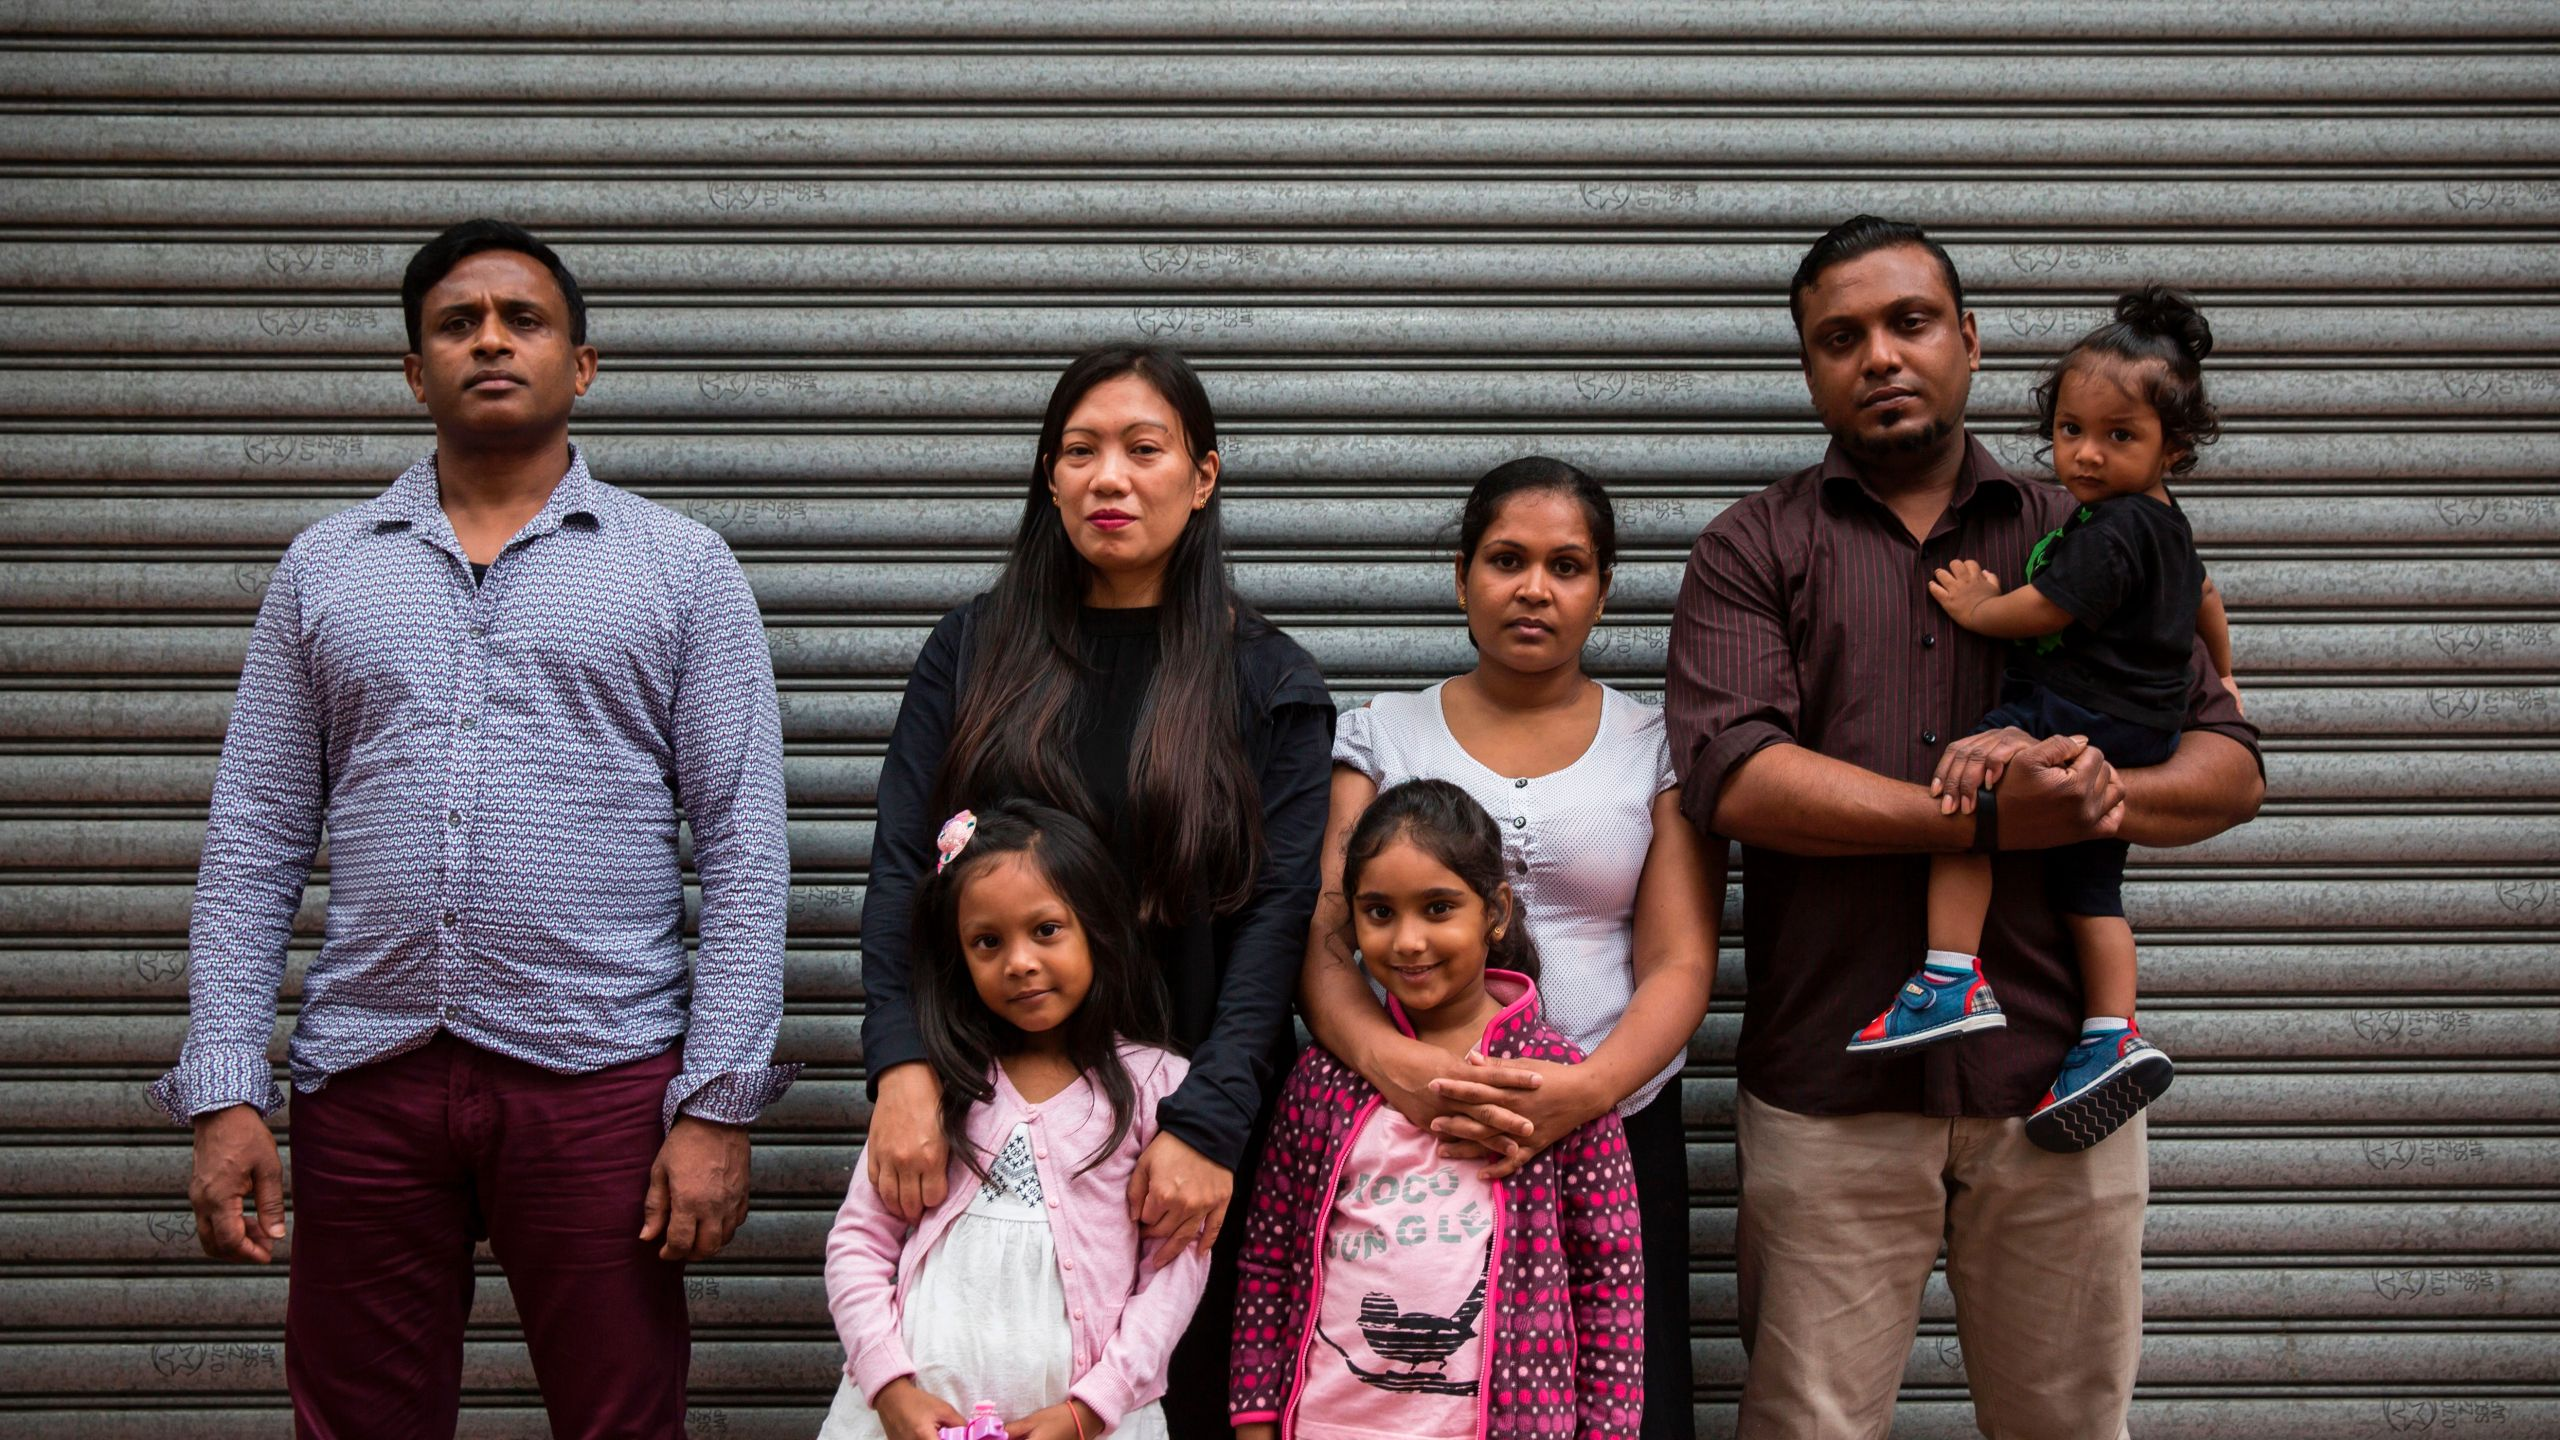 Sri Lankan refugee Ajith Puspa (left), Filipino refugee Vanessa Rodel (second from left) with her daughter Keana, Sri Lankan refugees Nadeeka Nonis (third from right) with her partner Supun Thilina Kellapatha (second from right) and children Sethumdi (fourth from right) and Dinath (right) pose for a photo in front of the Torture Claims Appeal Board building in Hong Kong on July 17, 2017, before attending an appeal hearing over the rejection of their refugee status in the southern Chinese city. (Credit: ISAAC LAWRENCE/AFP/Getty Images)